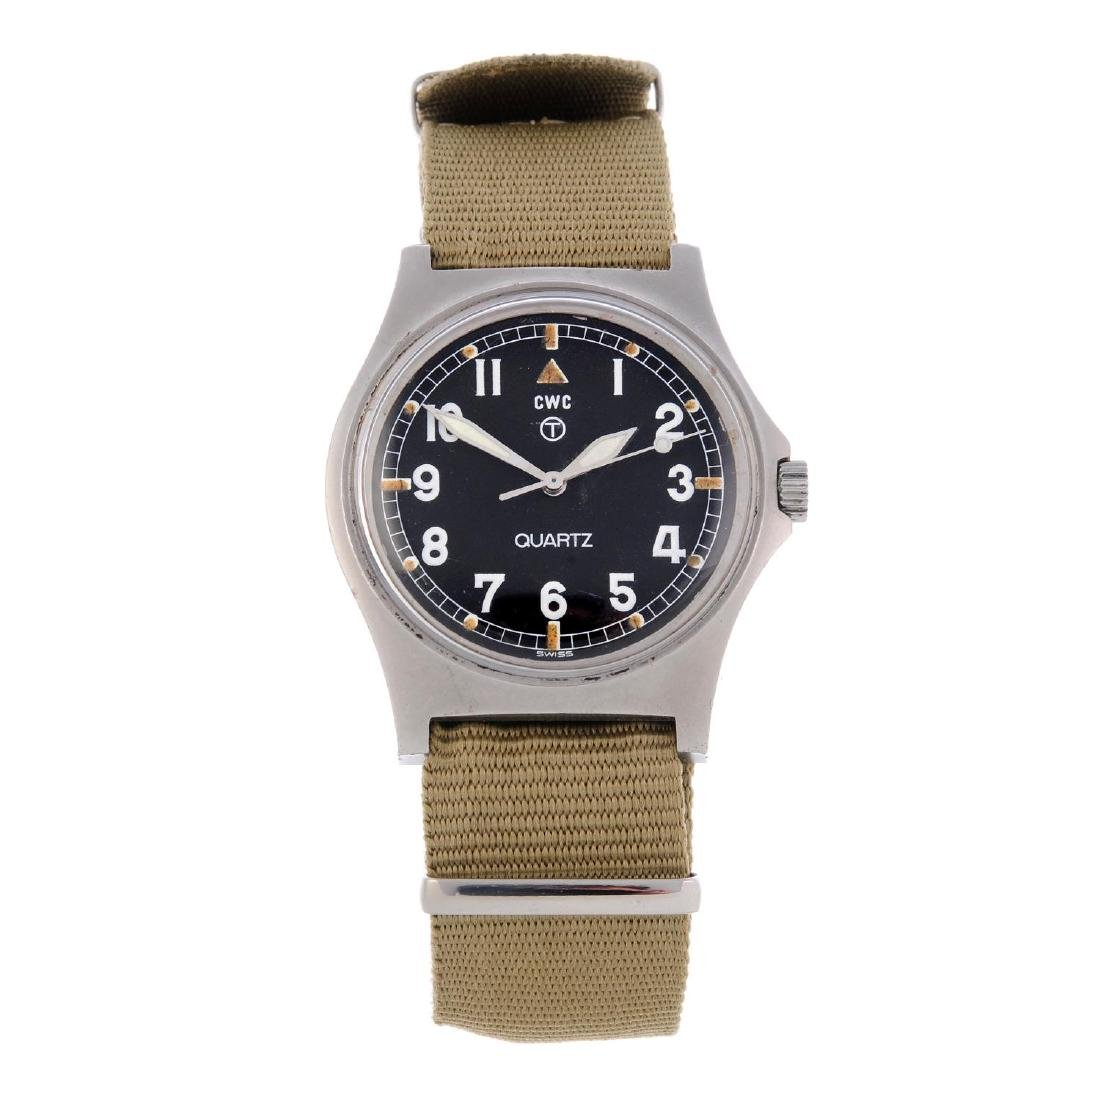 CWC - a gentleman's military issue wrist watch.